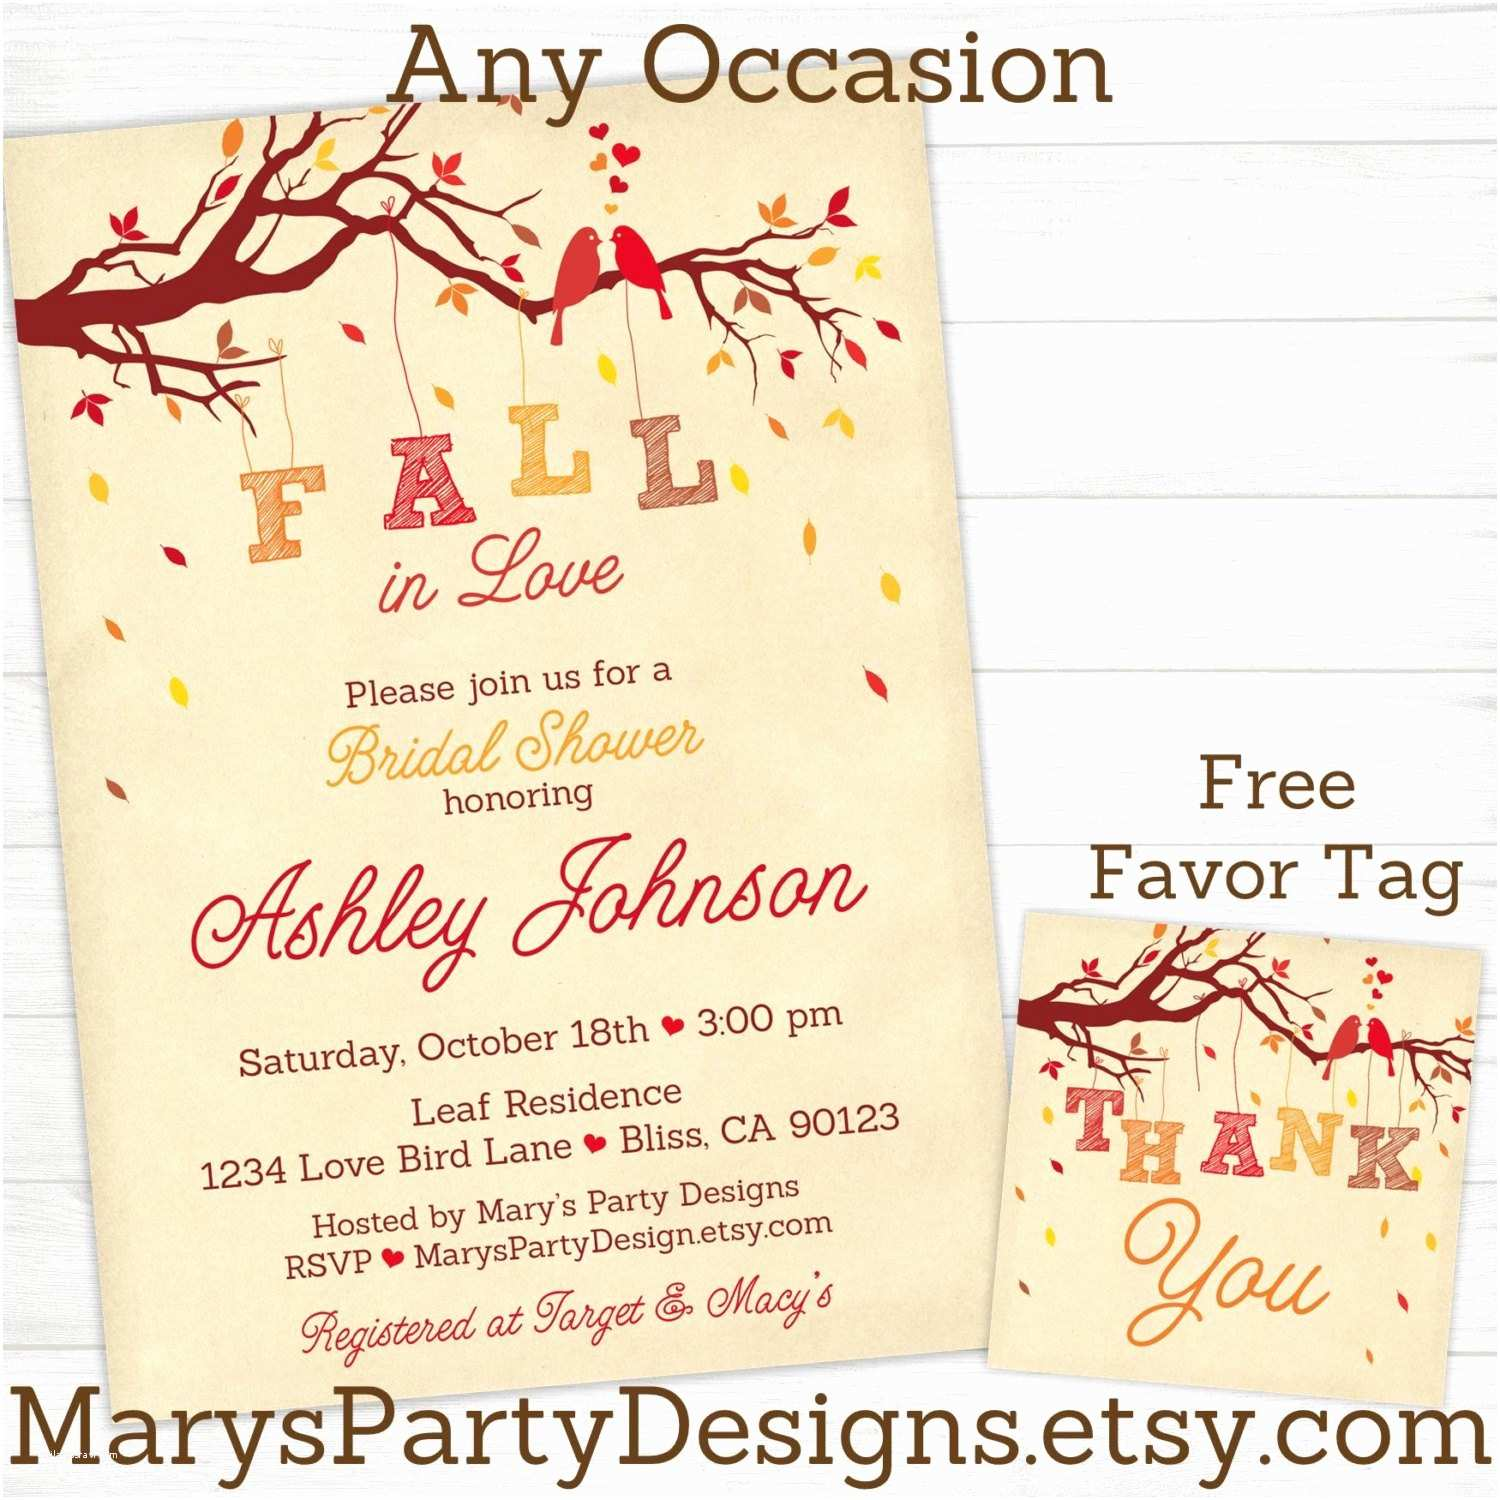 Coed Wedding Shower Invitations Fall In Love Bridal Shower Invitations Invites Co Ed Wedding